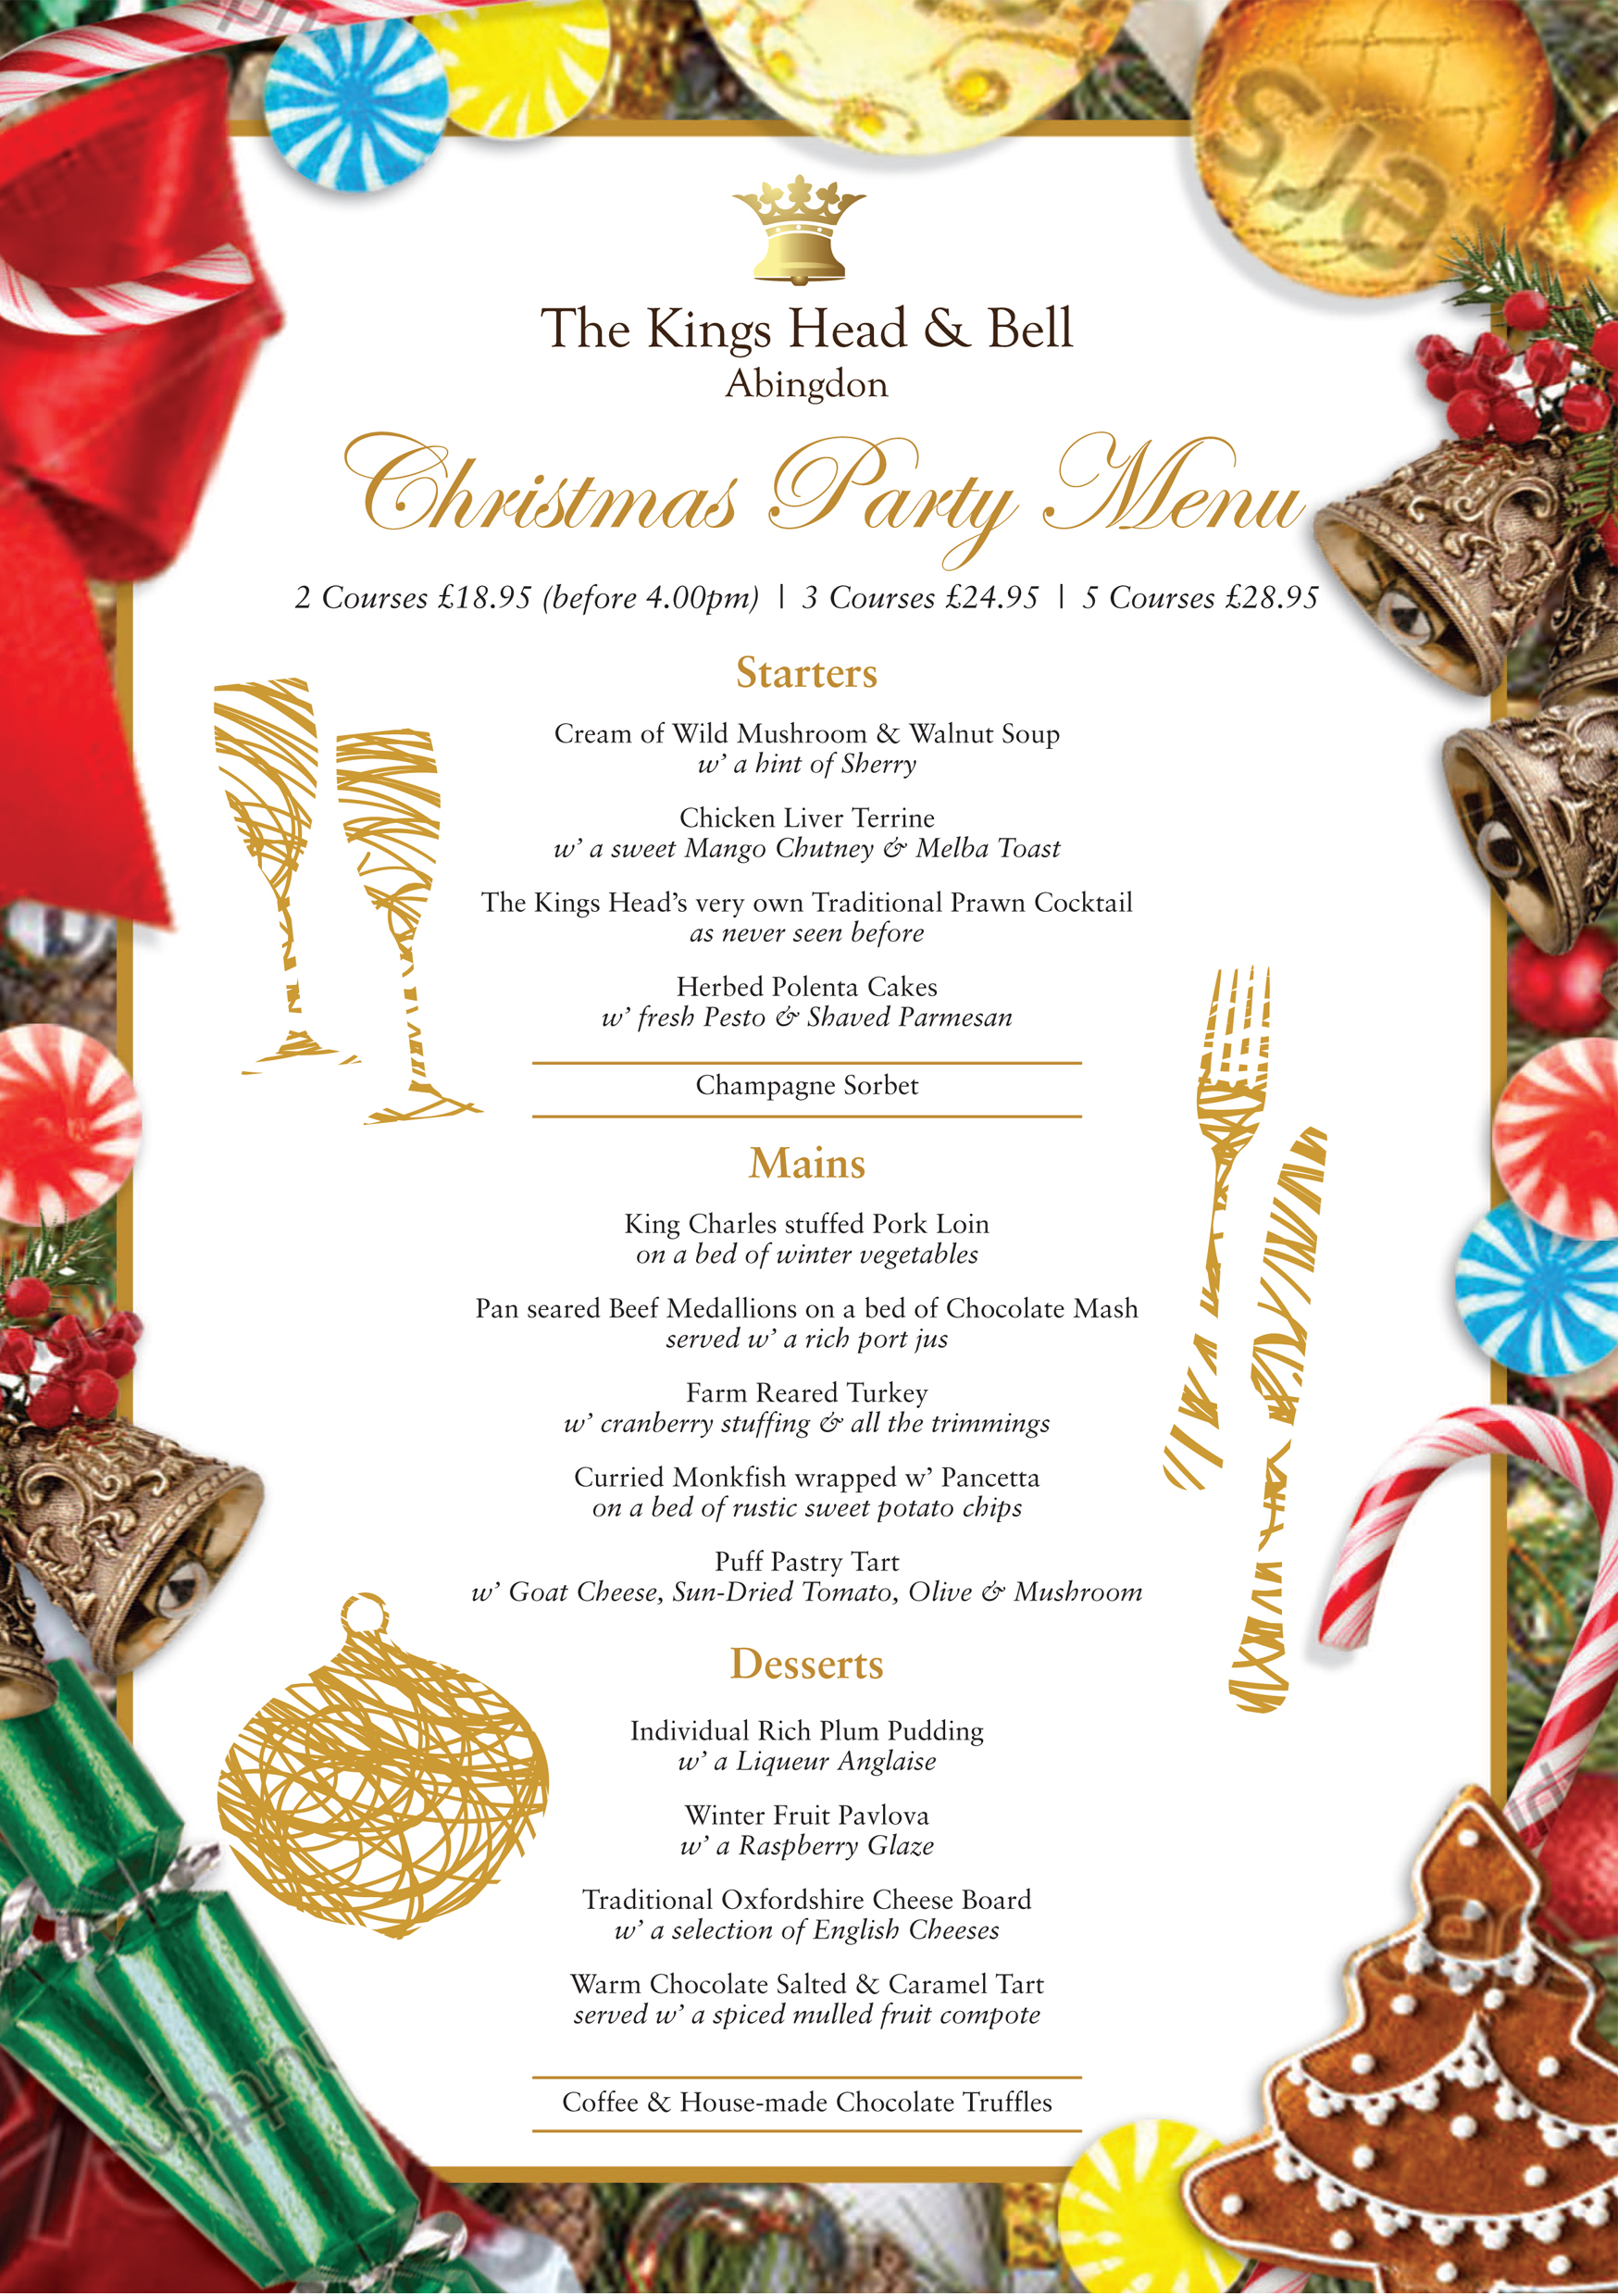 16th December – Christmas Party Time!